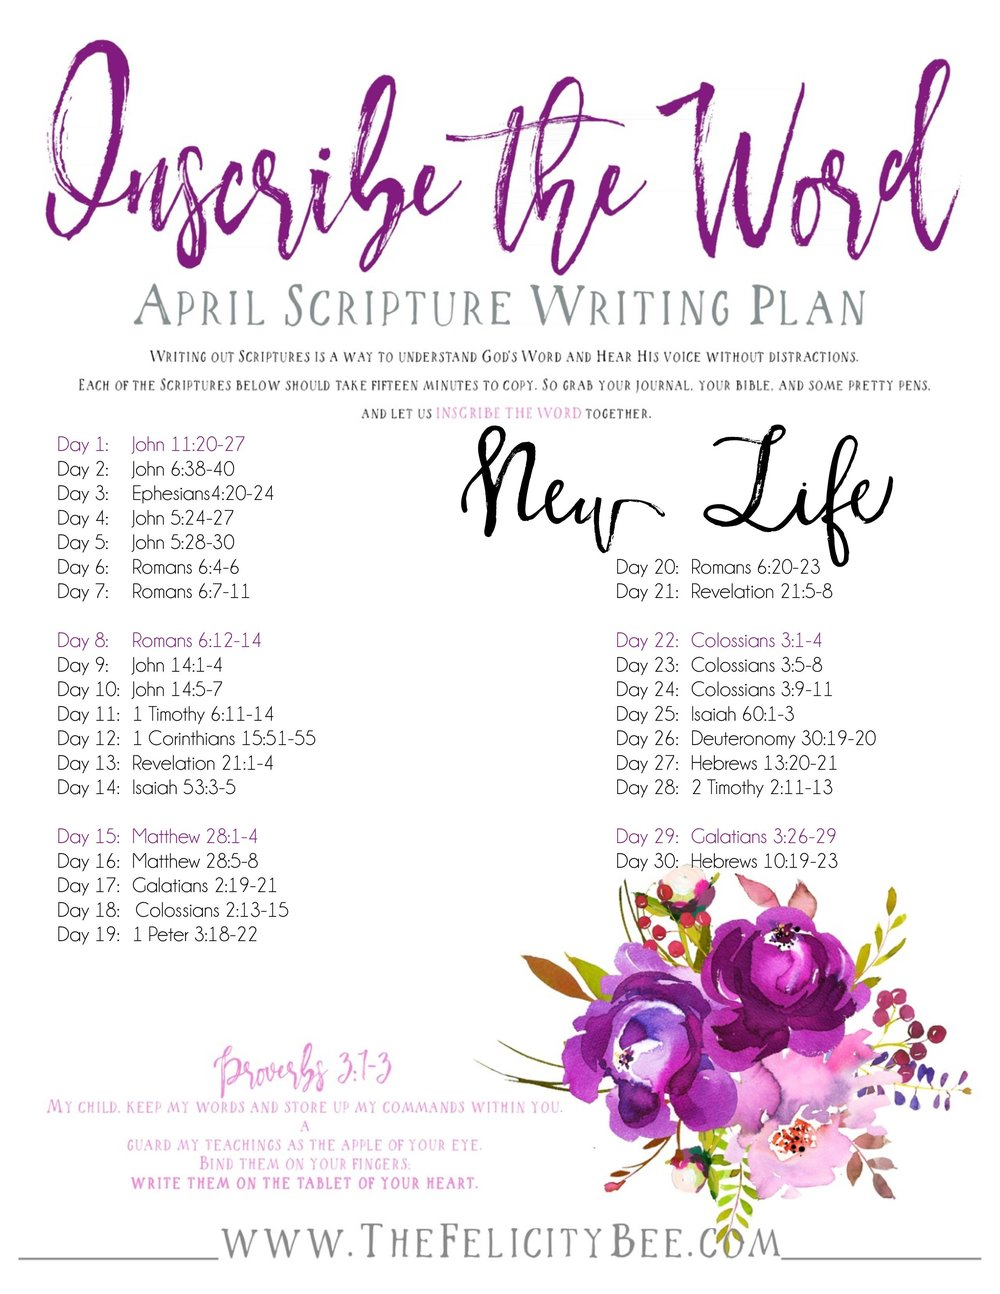 To Download your Inscribe the Word April Plan,  CLICK HERE.